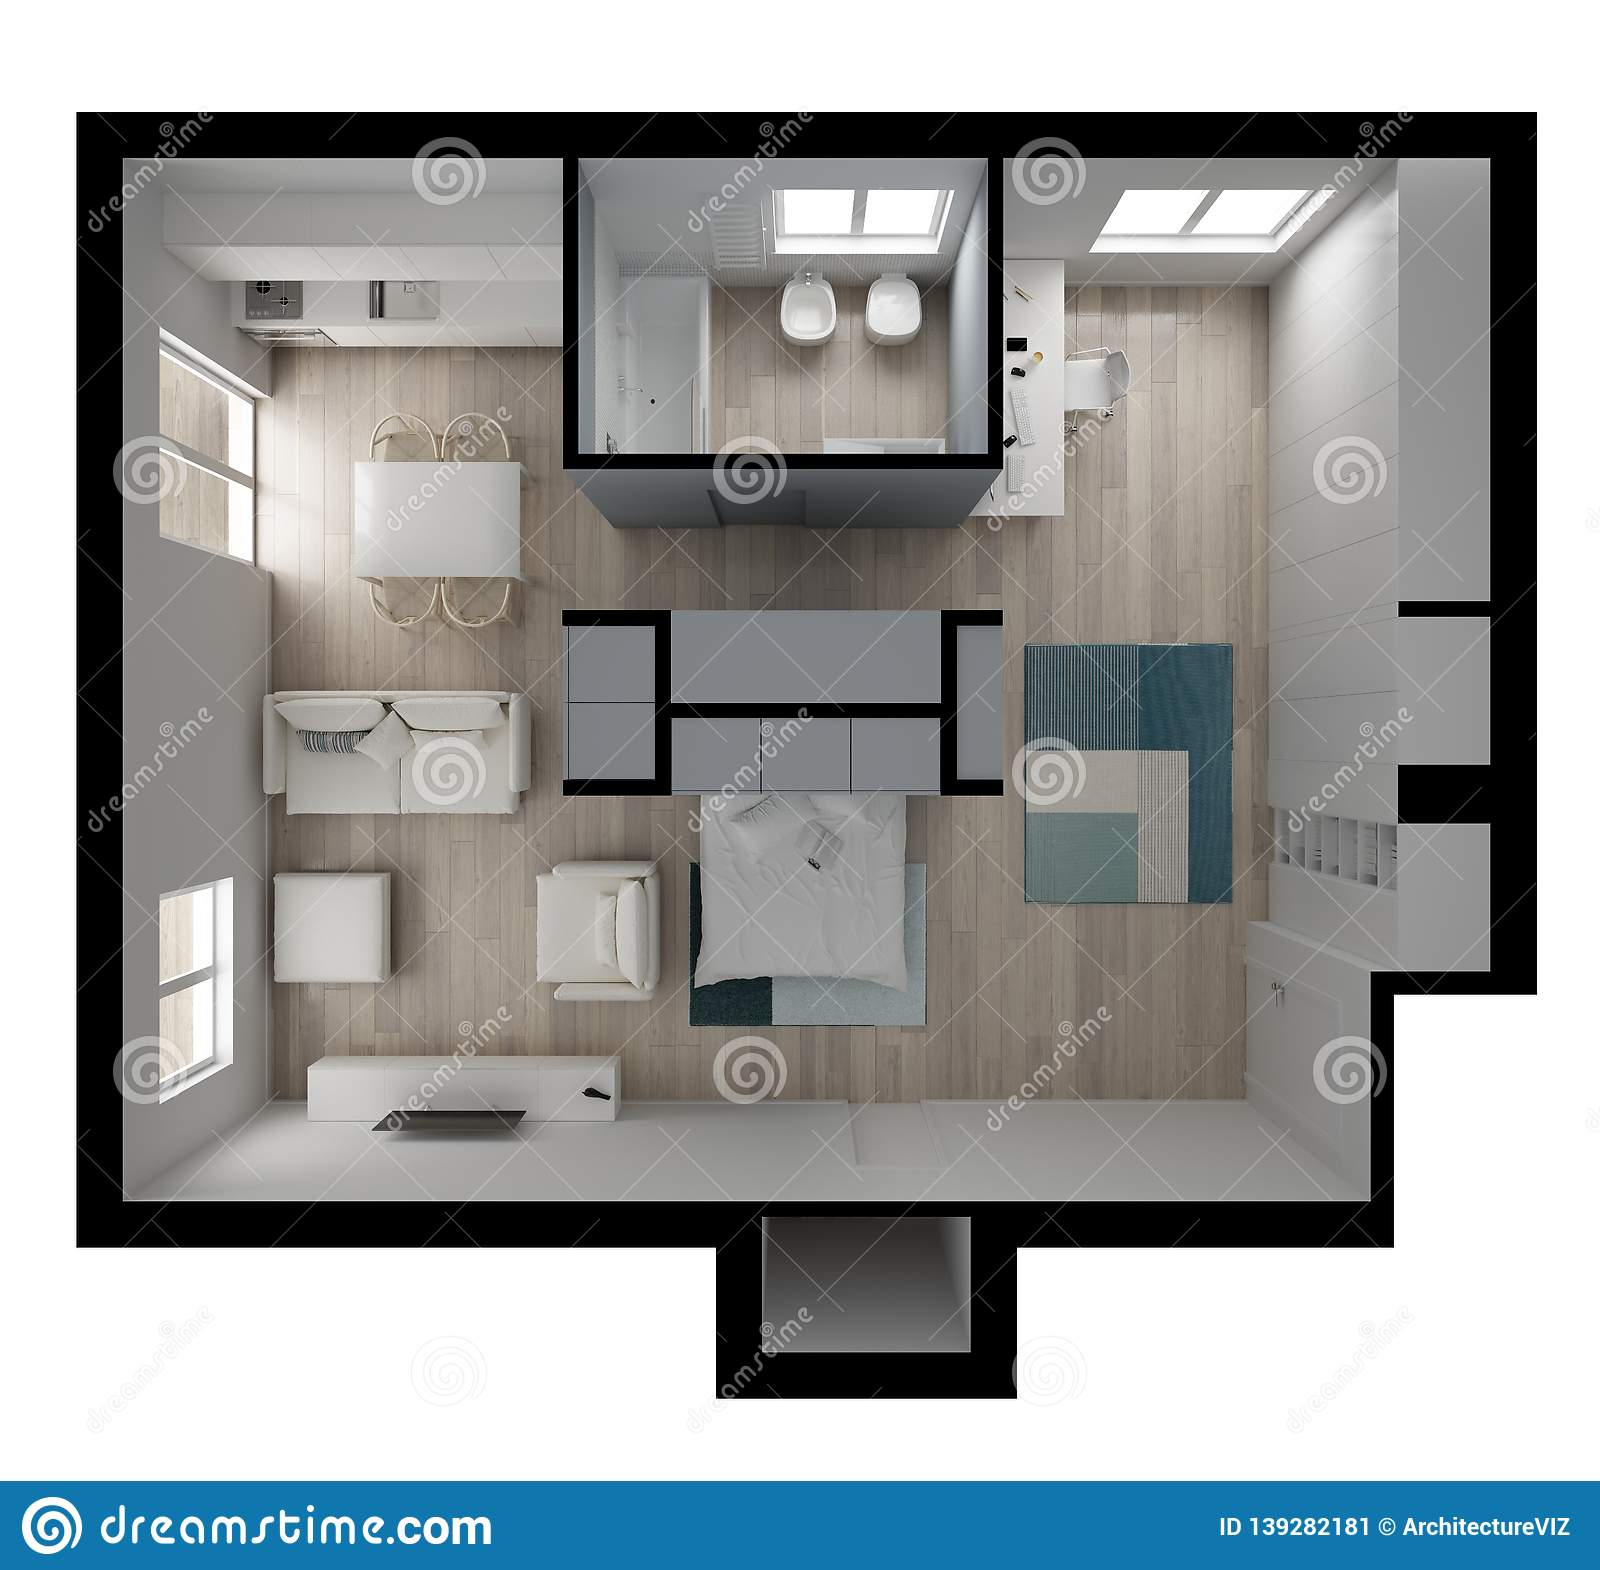 One Room Apartment Flat Top View Murphy Bed Furniture And Decors Plan Cross Section Interior Design Architect Designer Stock Image Image Of Architecture Floor 139282181